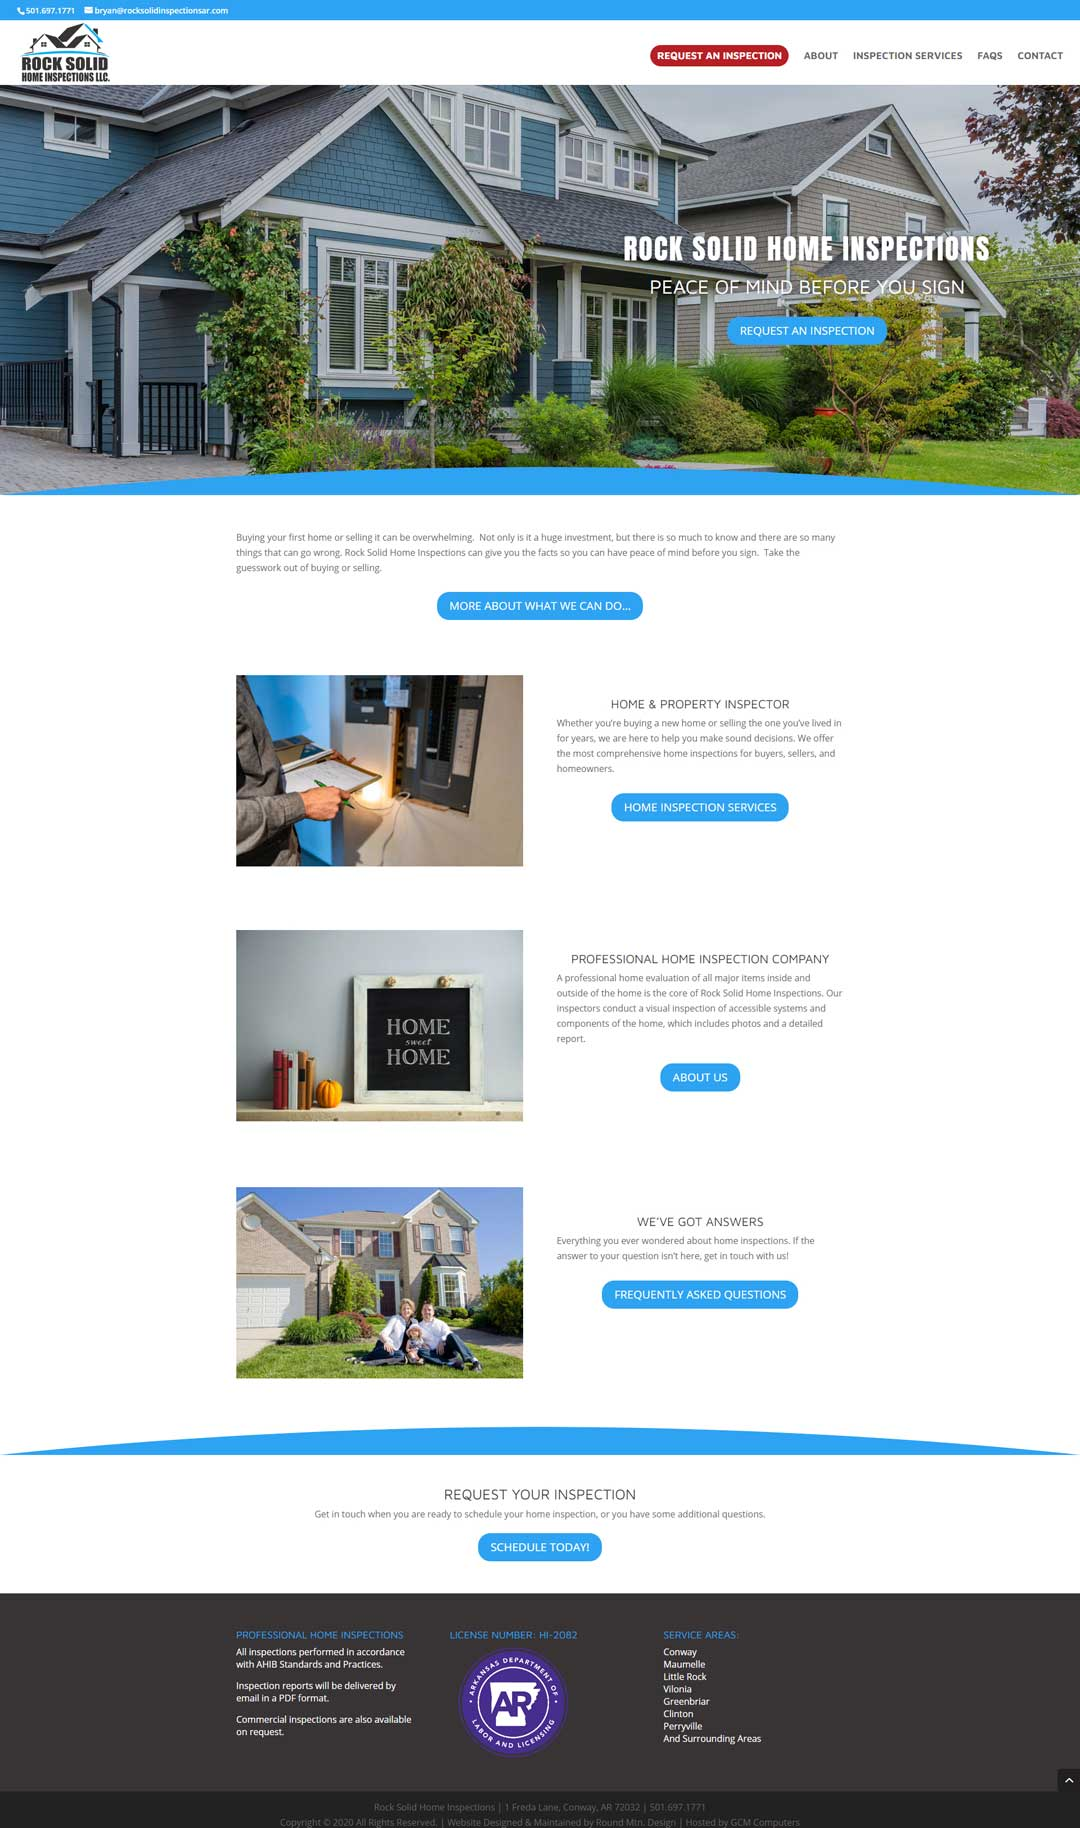 Web development for Rock Solid Home Inspections